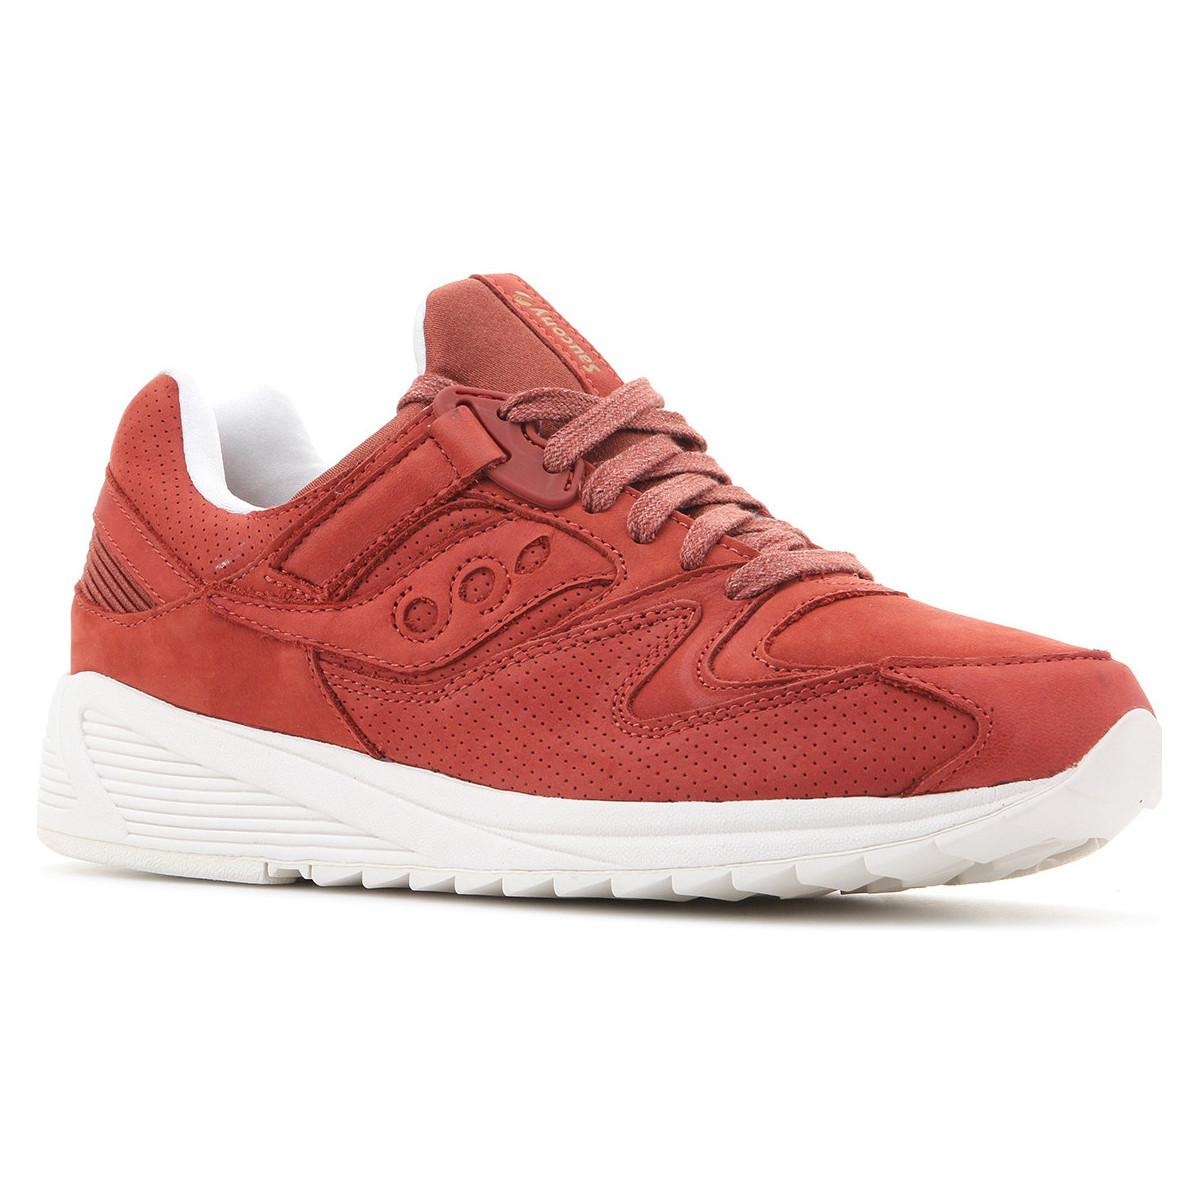 3b9cba954436 Saucony Grid 8500 Ht S70390-1 Men s Shoes (trainers) In Red in Red ...